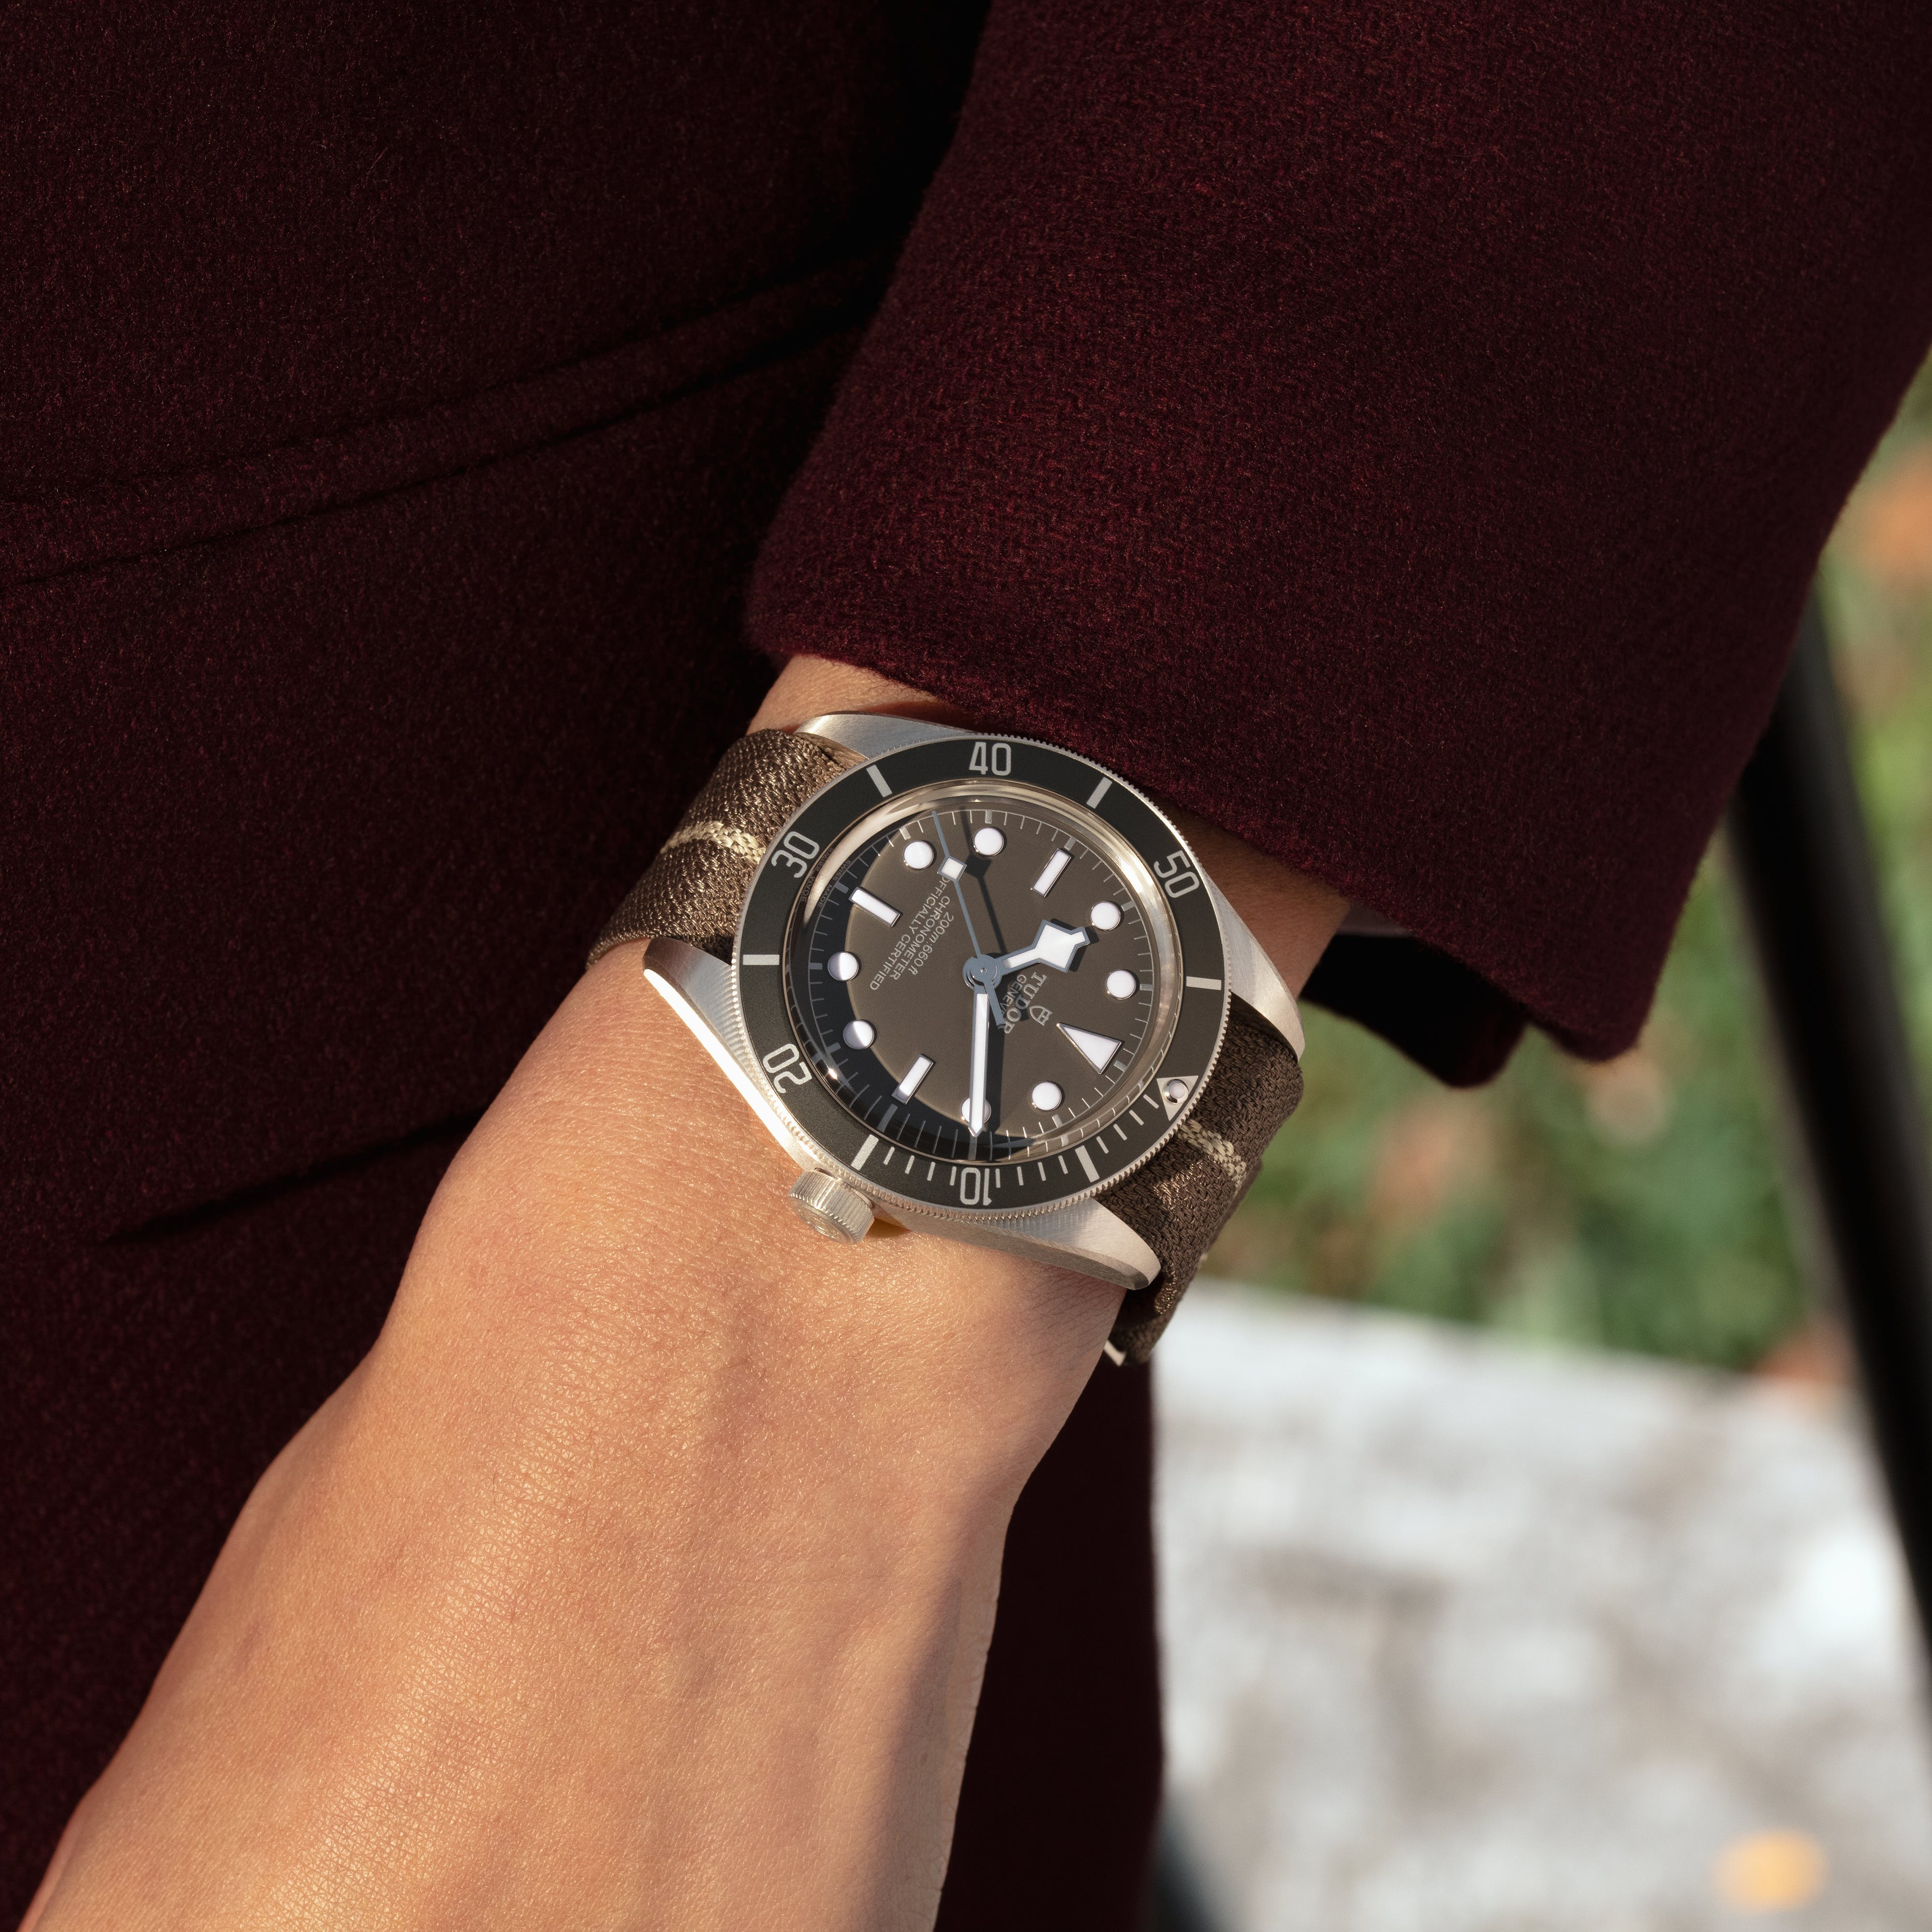 The new Tudor Black Bay Fifty-Eight in silver.